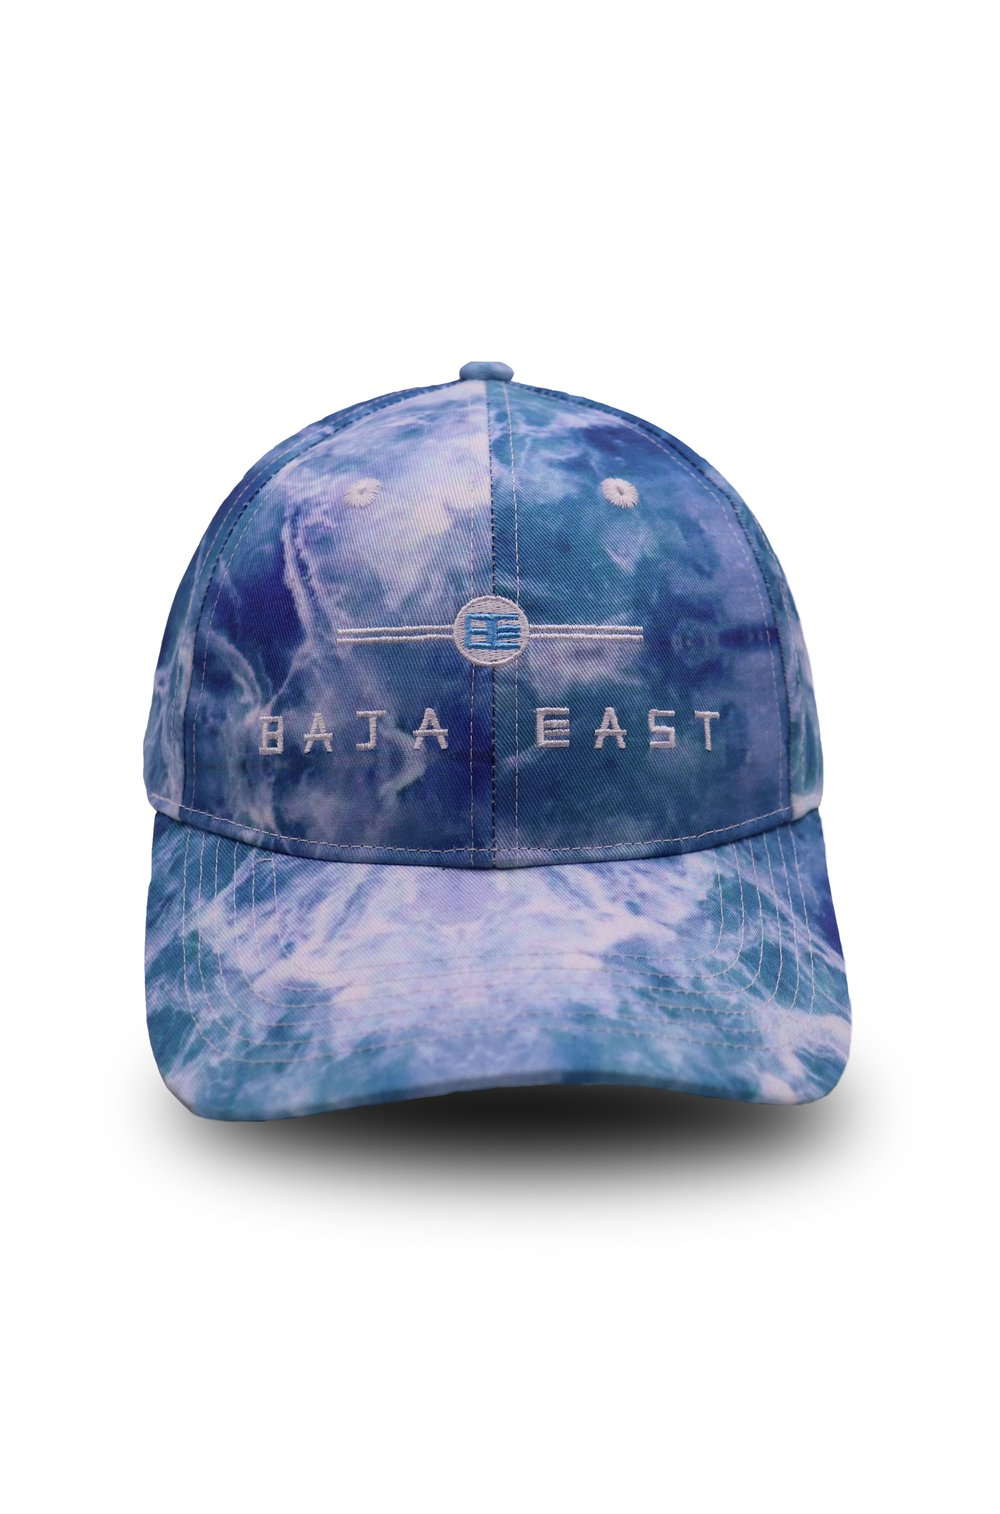 PACIFIC SURF BASEBALL CAP by Baja East, available on bajaeast.com for $85 Alessandra Ambrosio Hat Exact Product